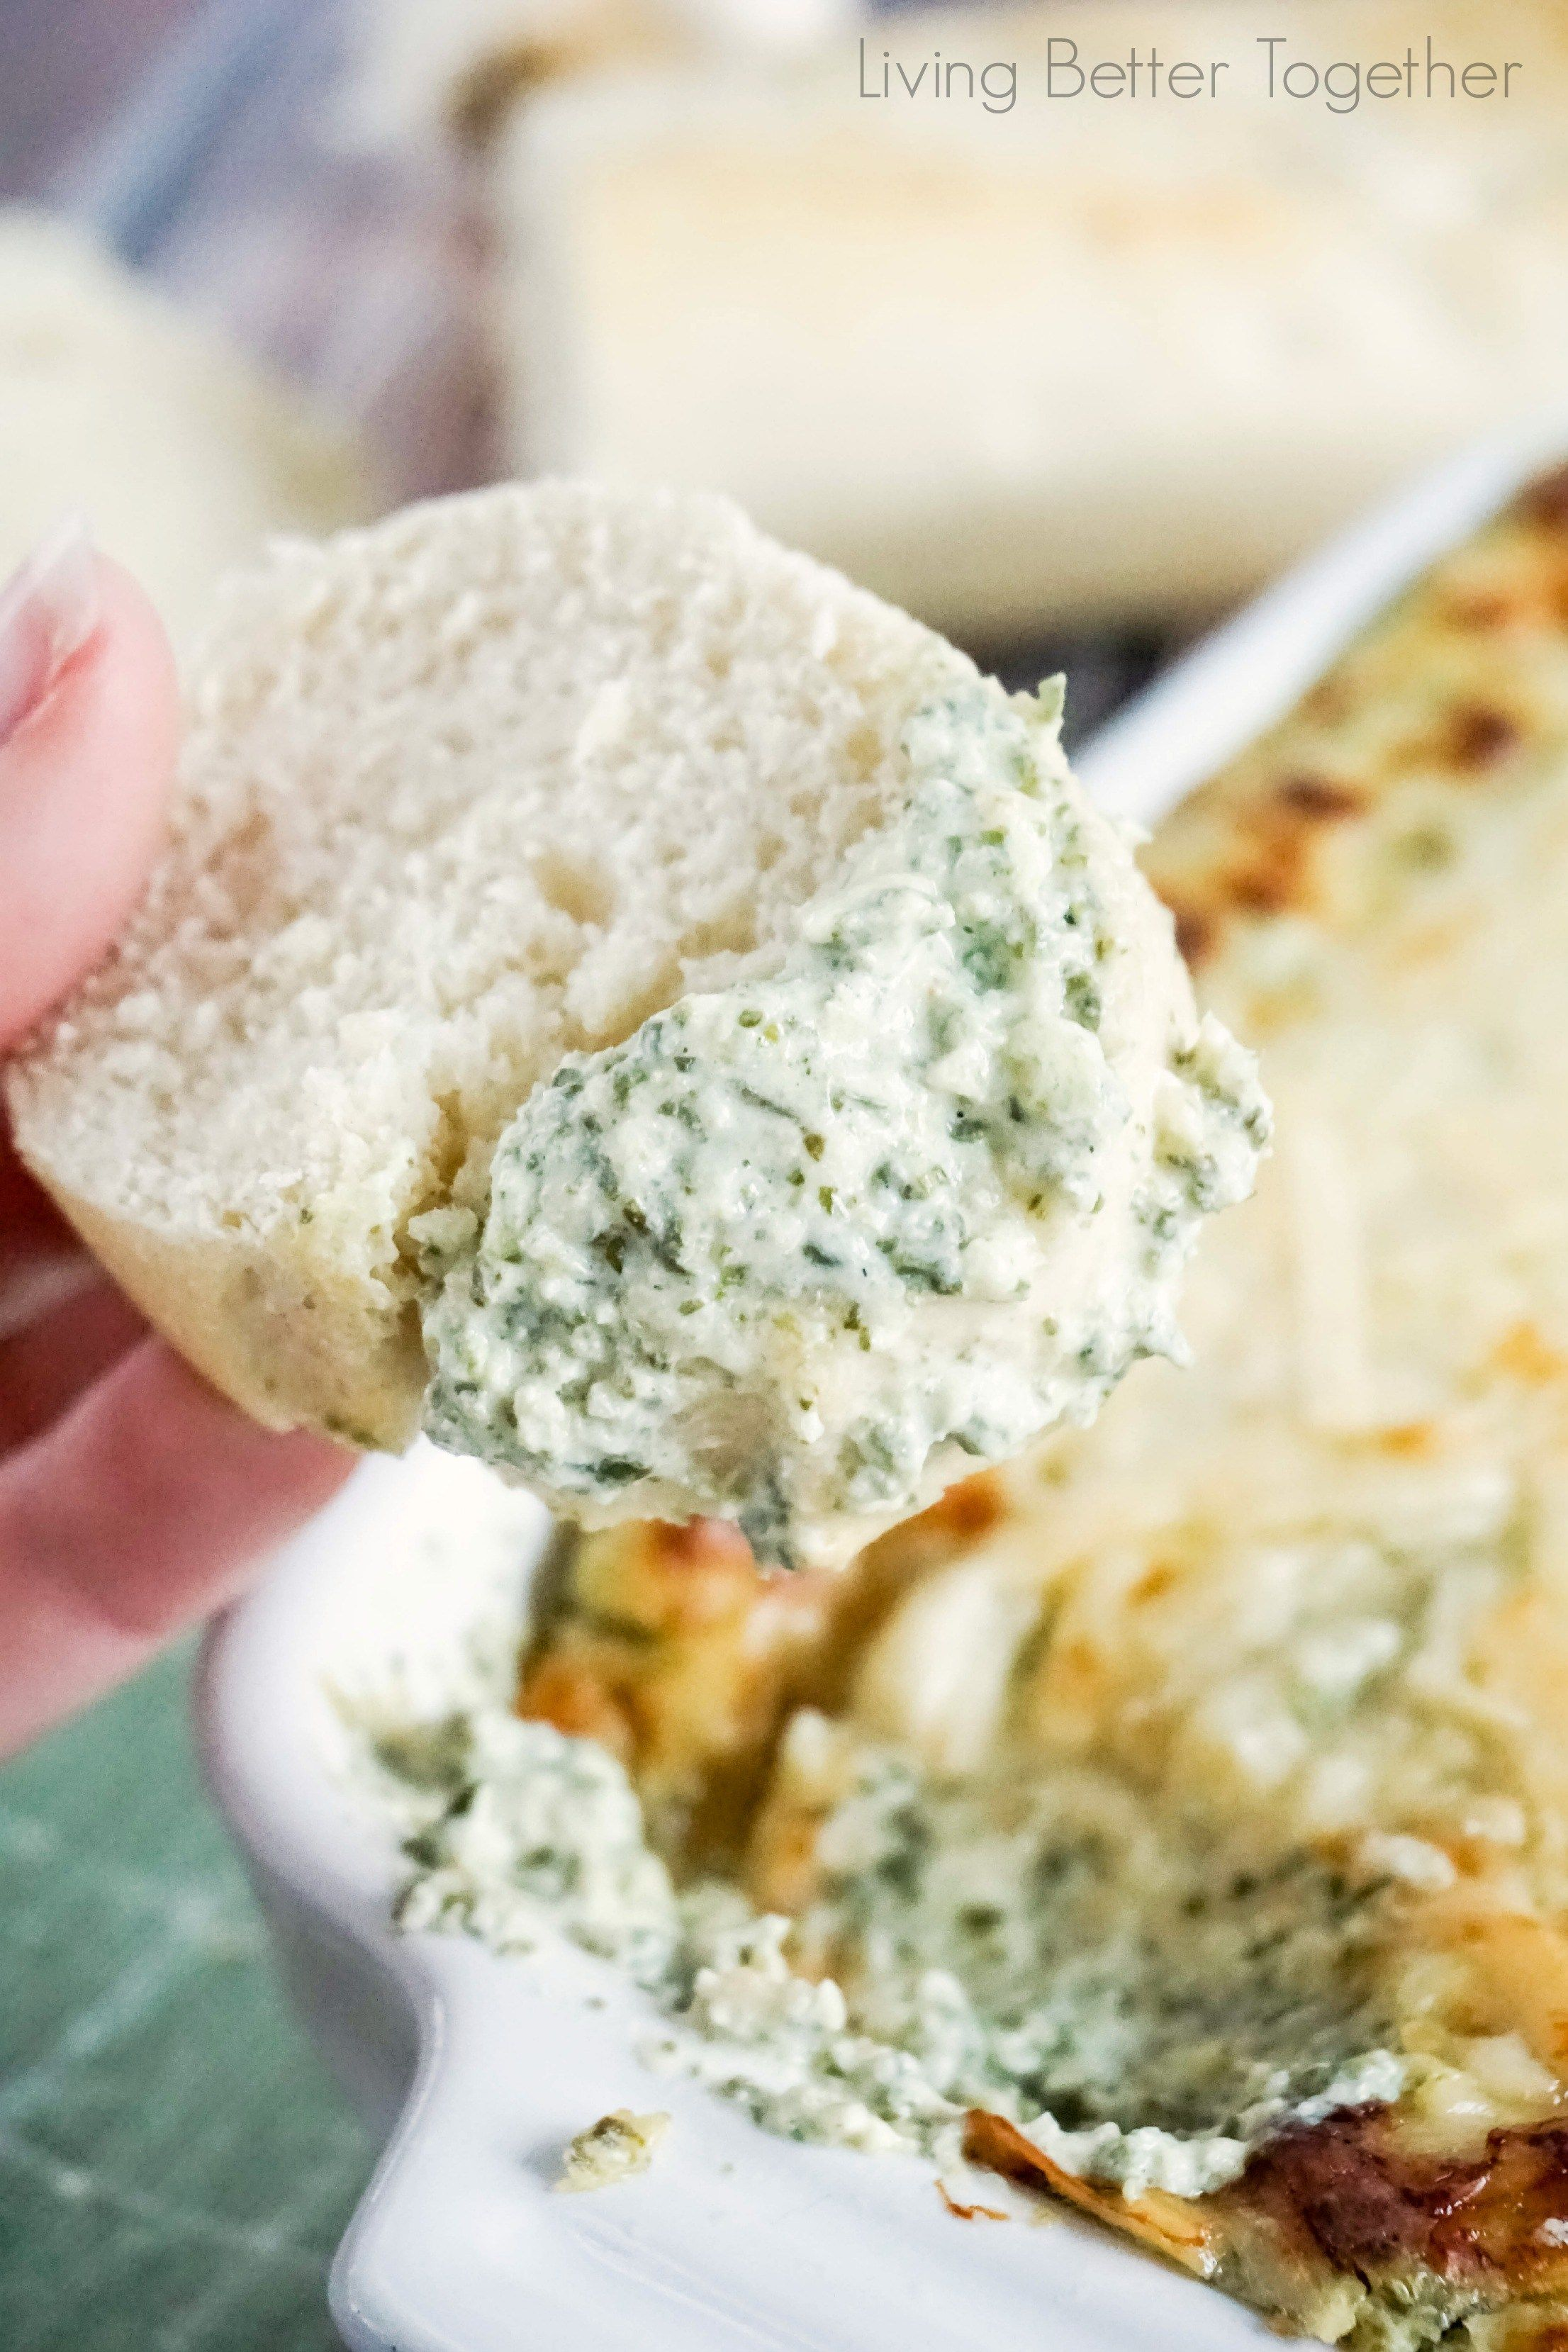 This Baked Spinach and Artichoke Dip is a must have at any party. With two different prep methods you can make it either hearty or creamy! Perfect for games days, new years, or family get togethers!